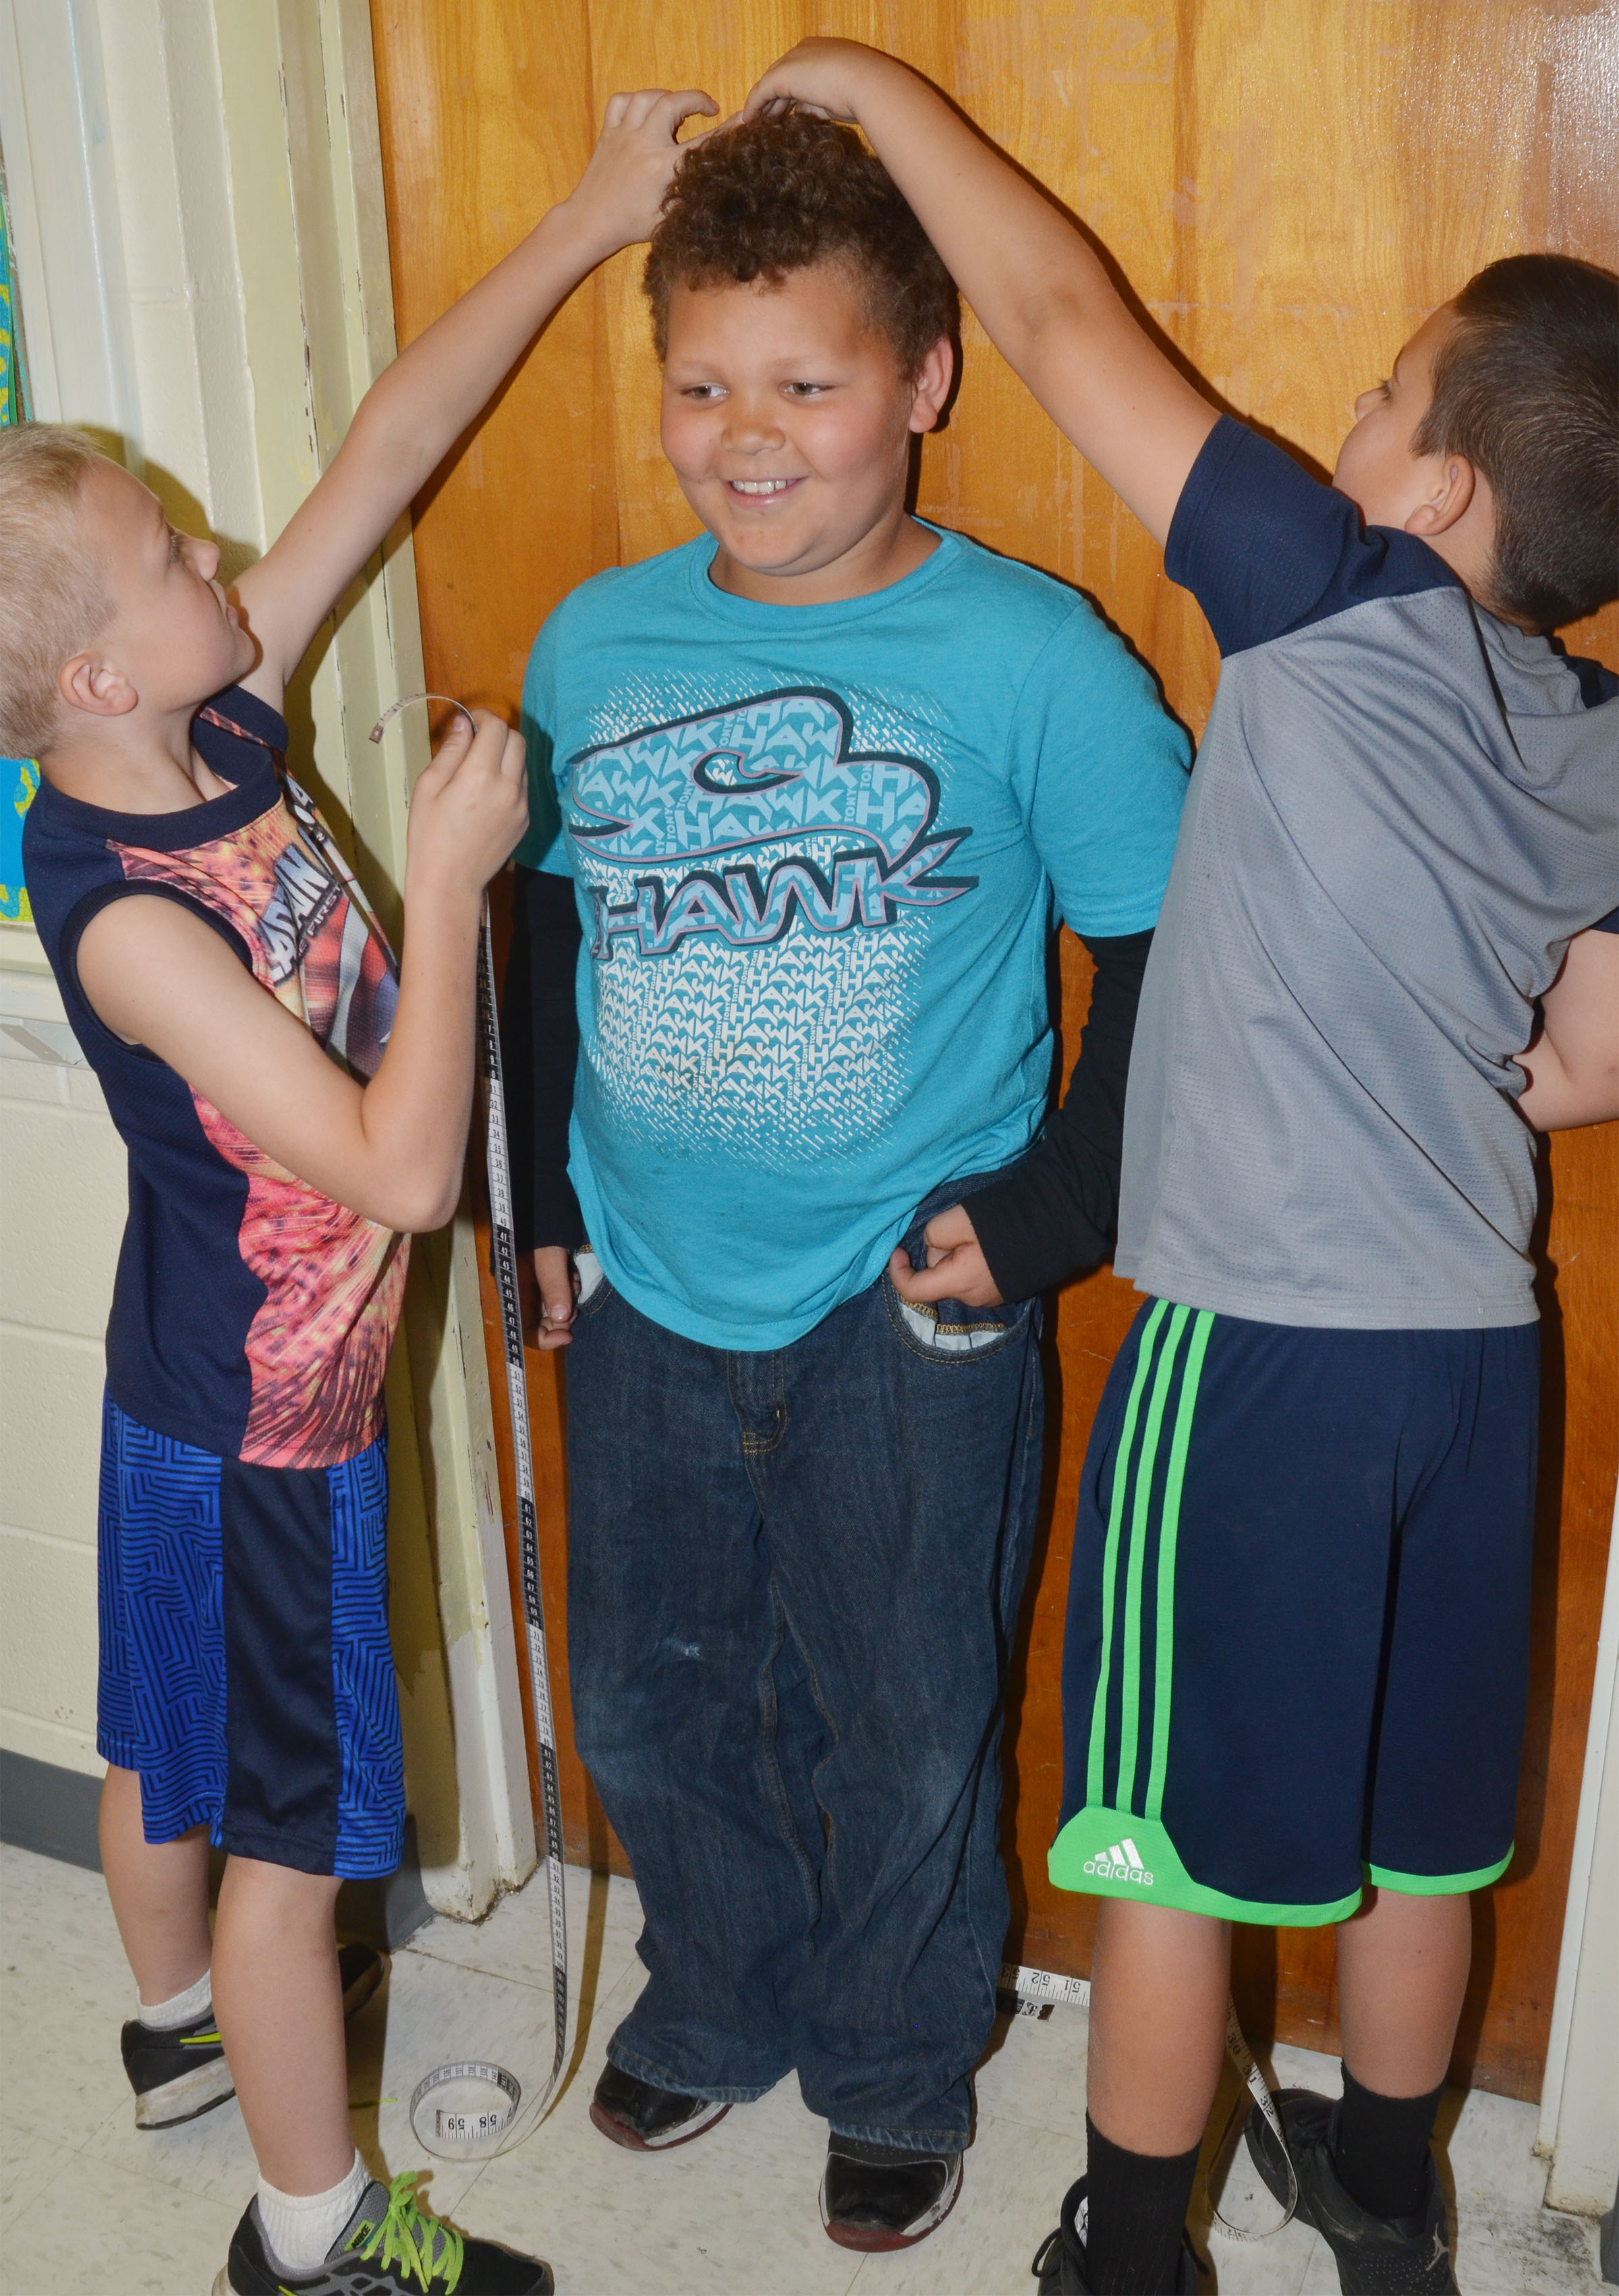 CES second-grader Drevonte Gurley stands tall as his classmates Trenton Harris, at left, and Damien Clark measure him.